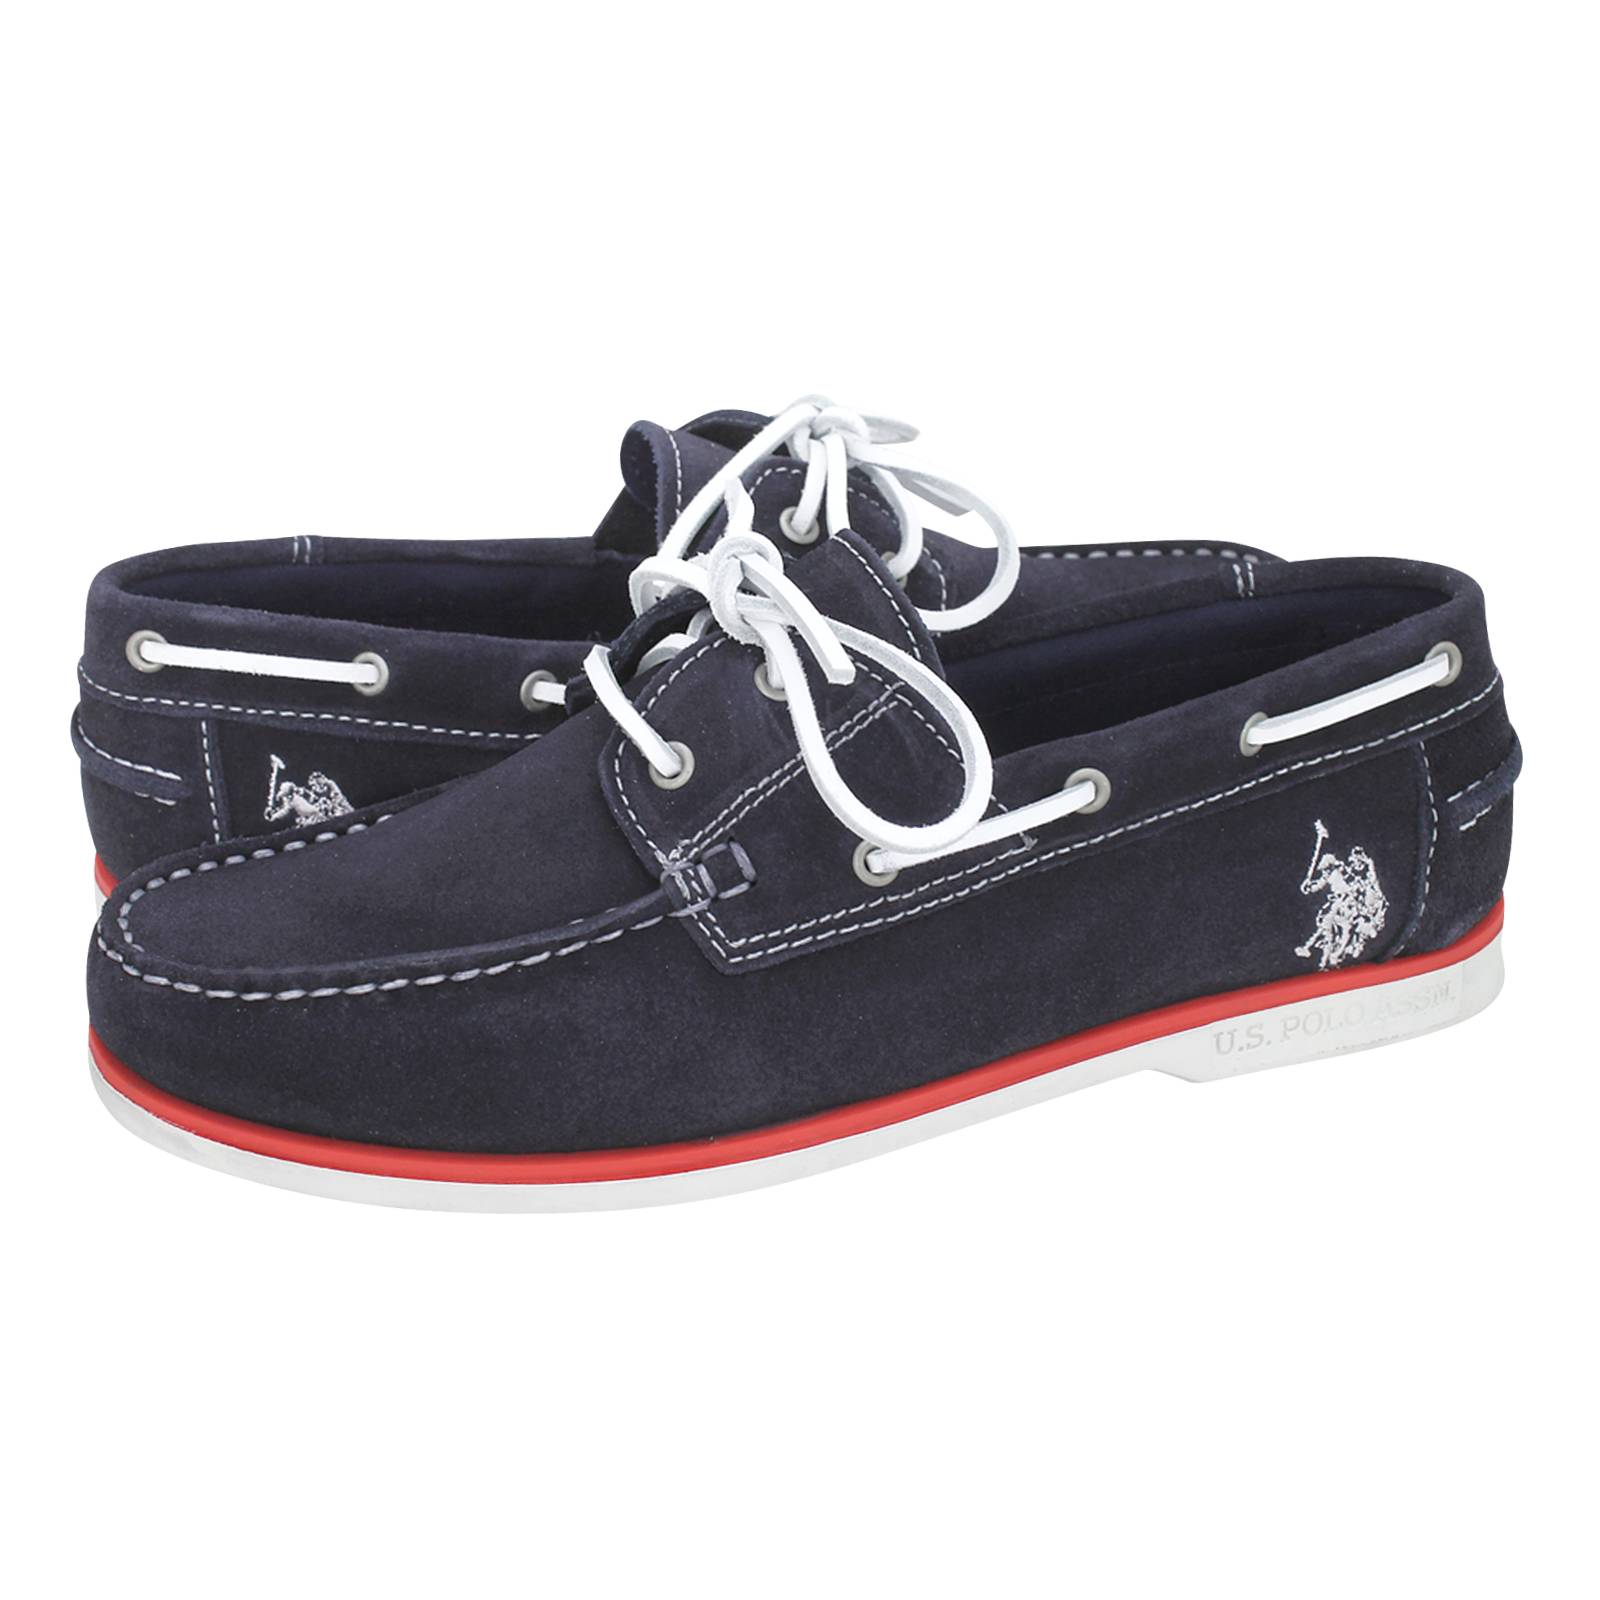 U.S. Polo ASSN Men's boat shoes made of